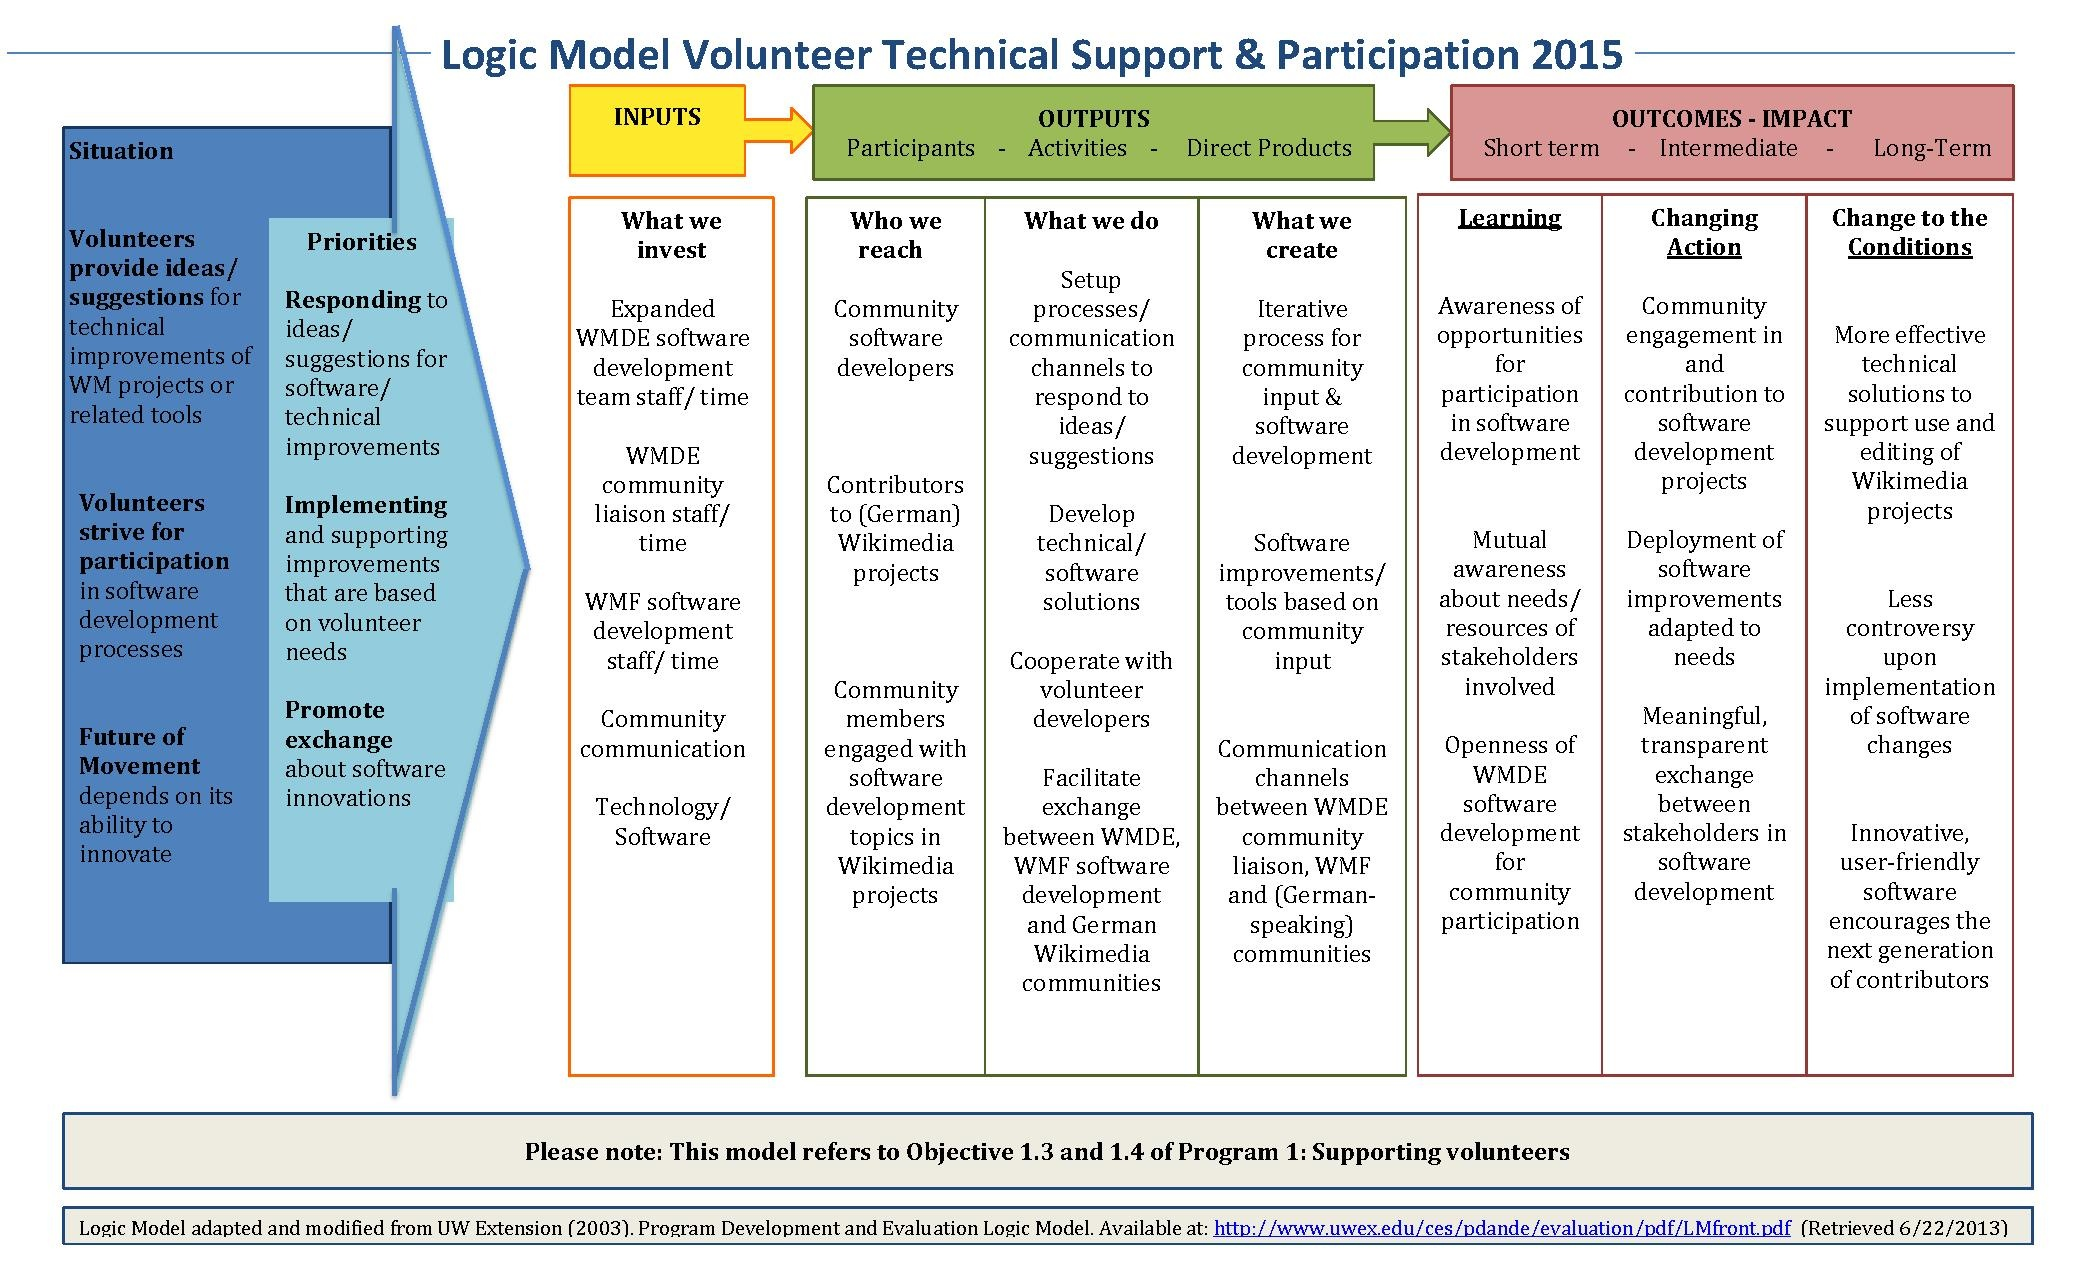 File logic model volunteer technical support 2015 final for Technical support plan template